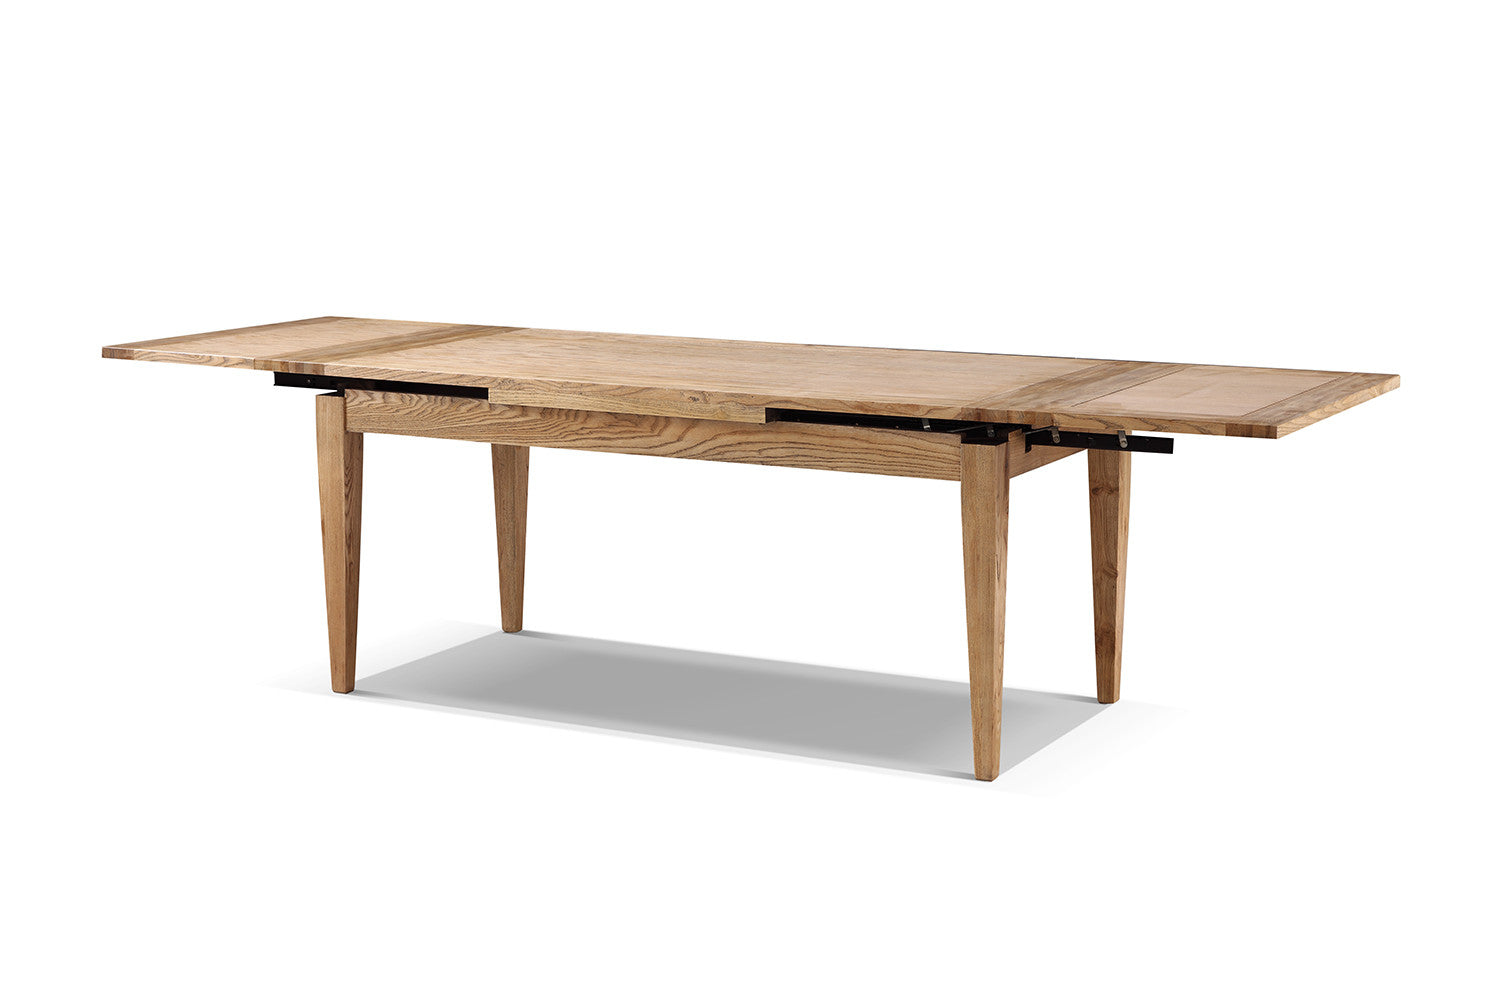 Table bois extensible - Table ronde extensible bois ...